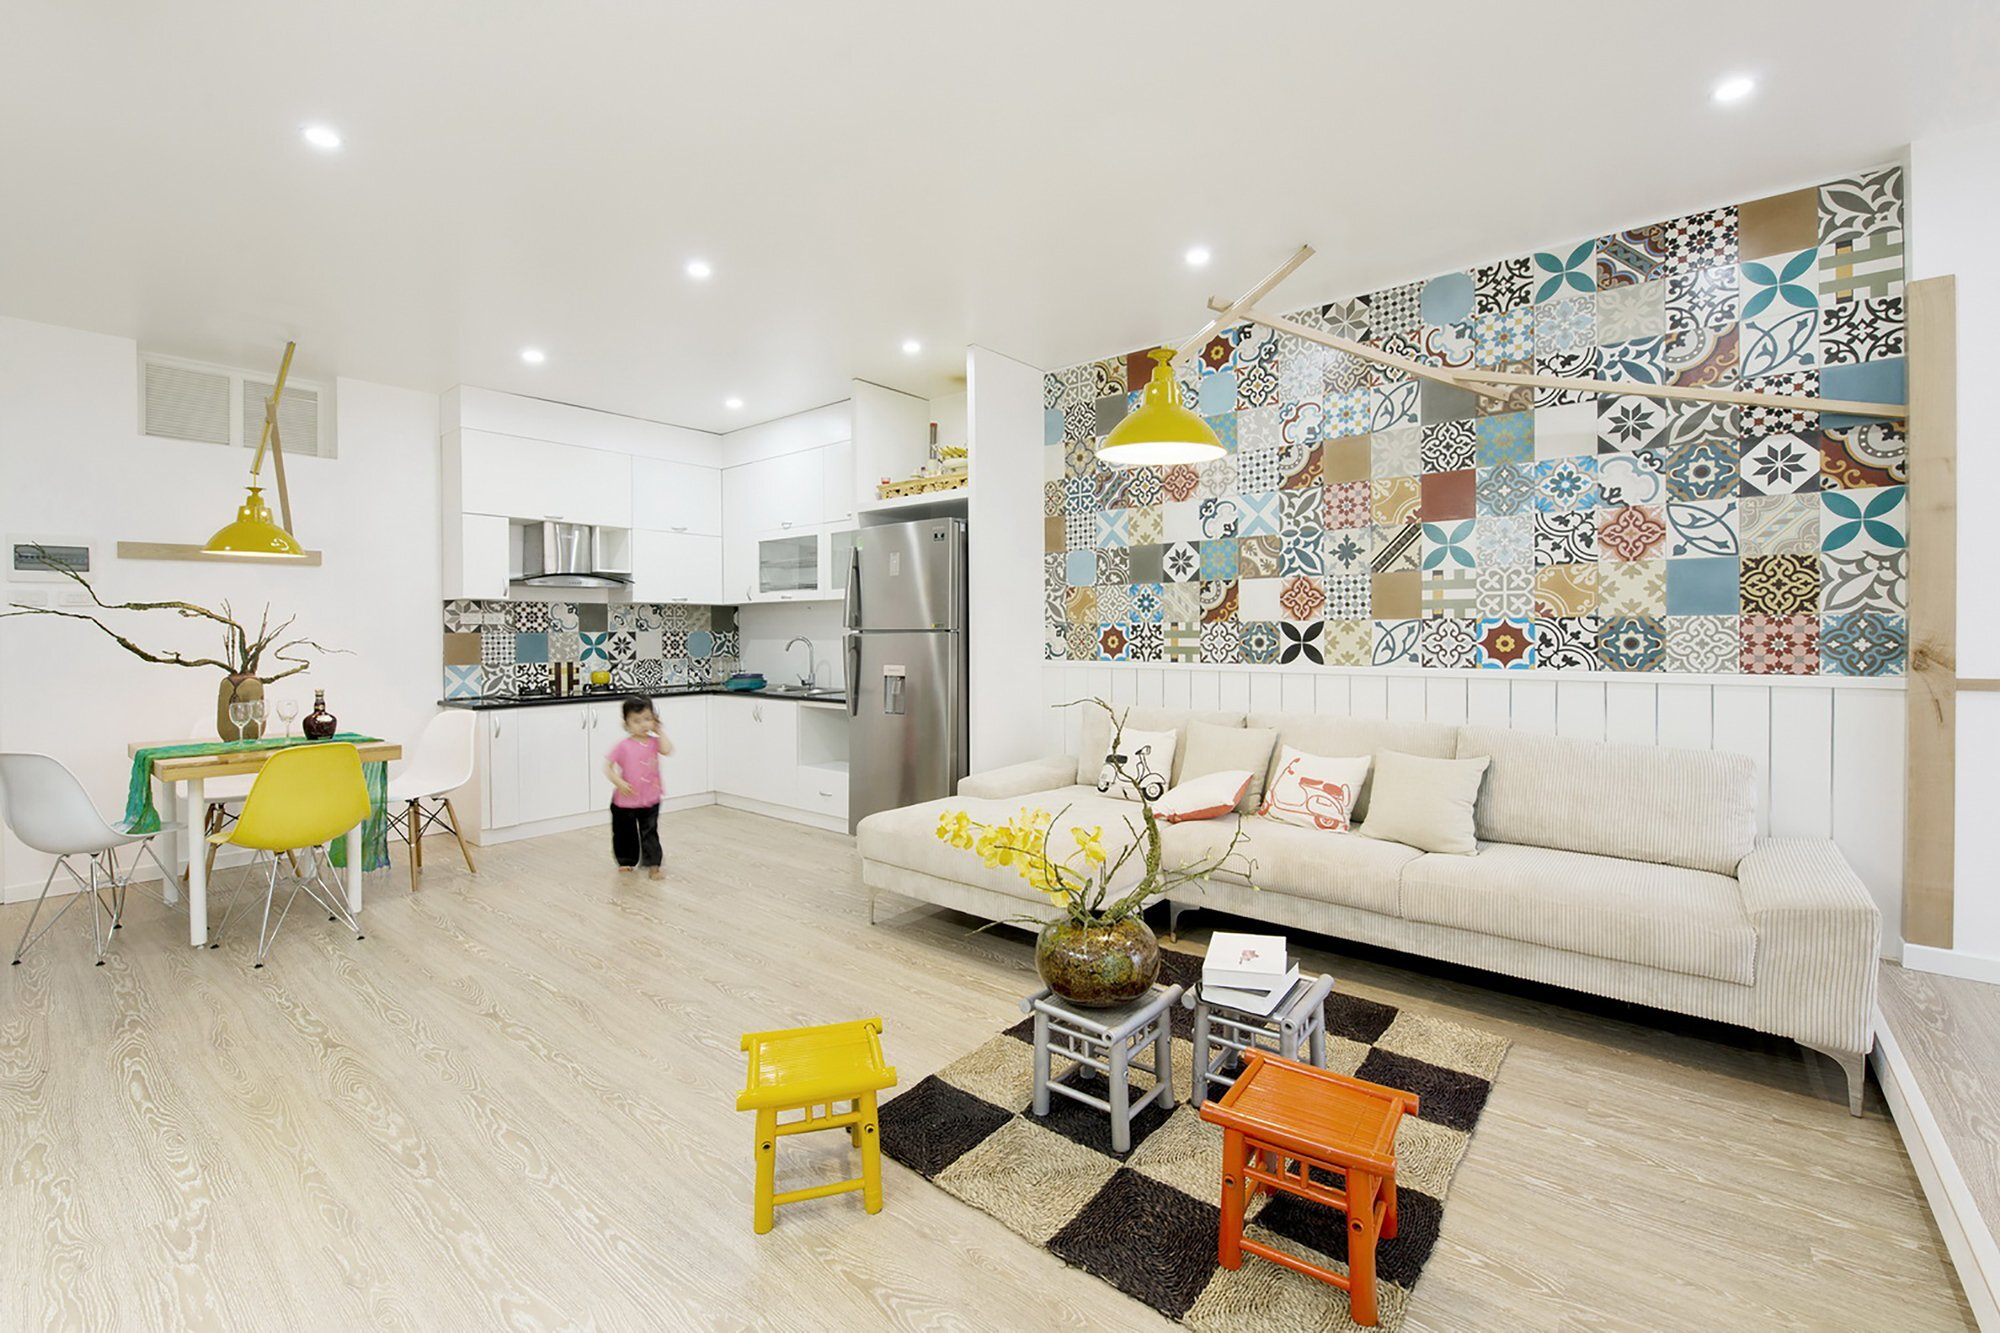 HT Apartment - Landmak Architect - Hanoi - Vietnam - Small Apartment - Living Room and Kitchen - Humble Homes